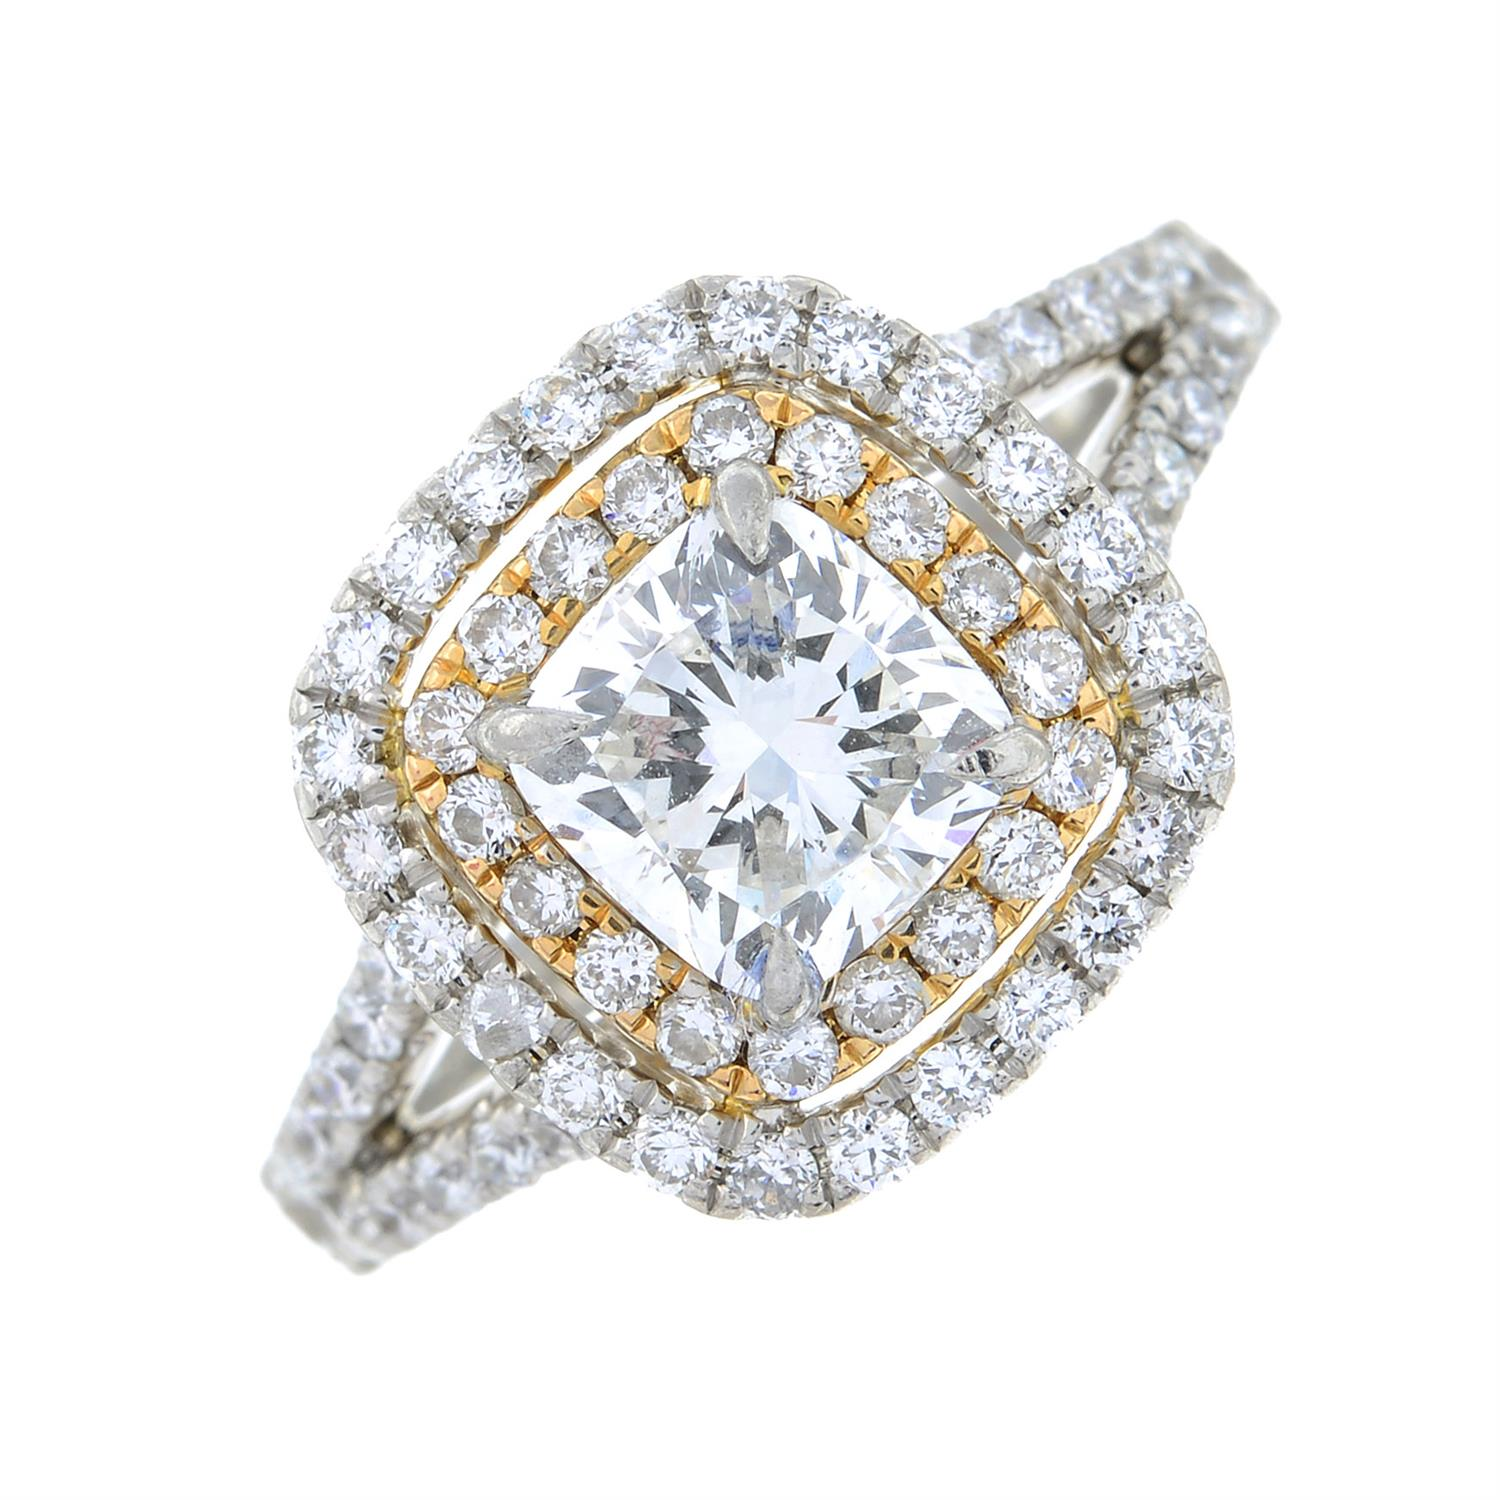 A platinum cushion-shape diamond ring, with brilliant-cut diamond surrounds and shoulders. - Image 2 of 7